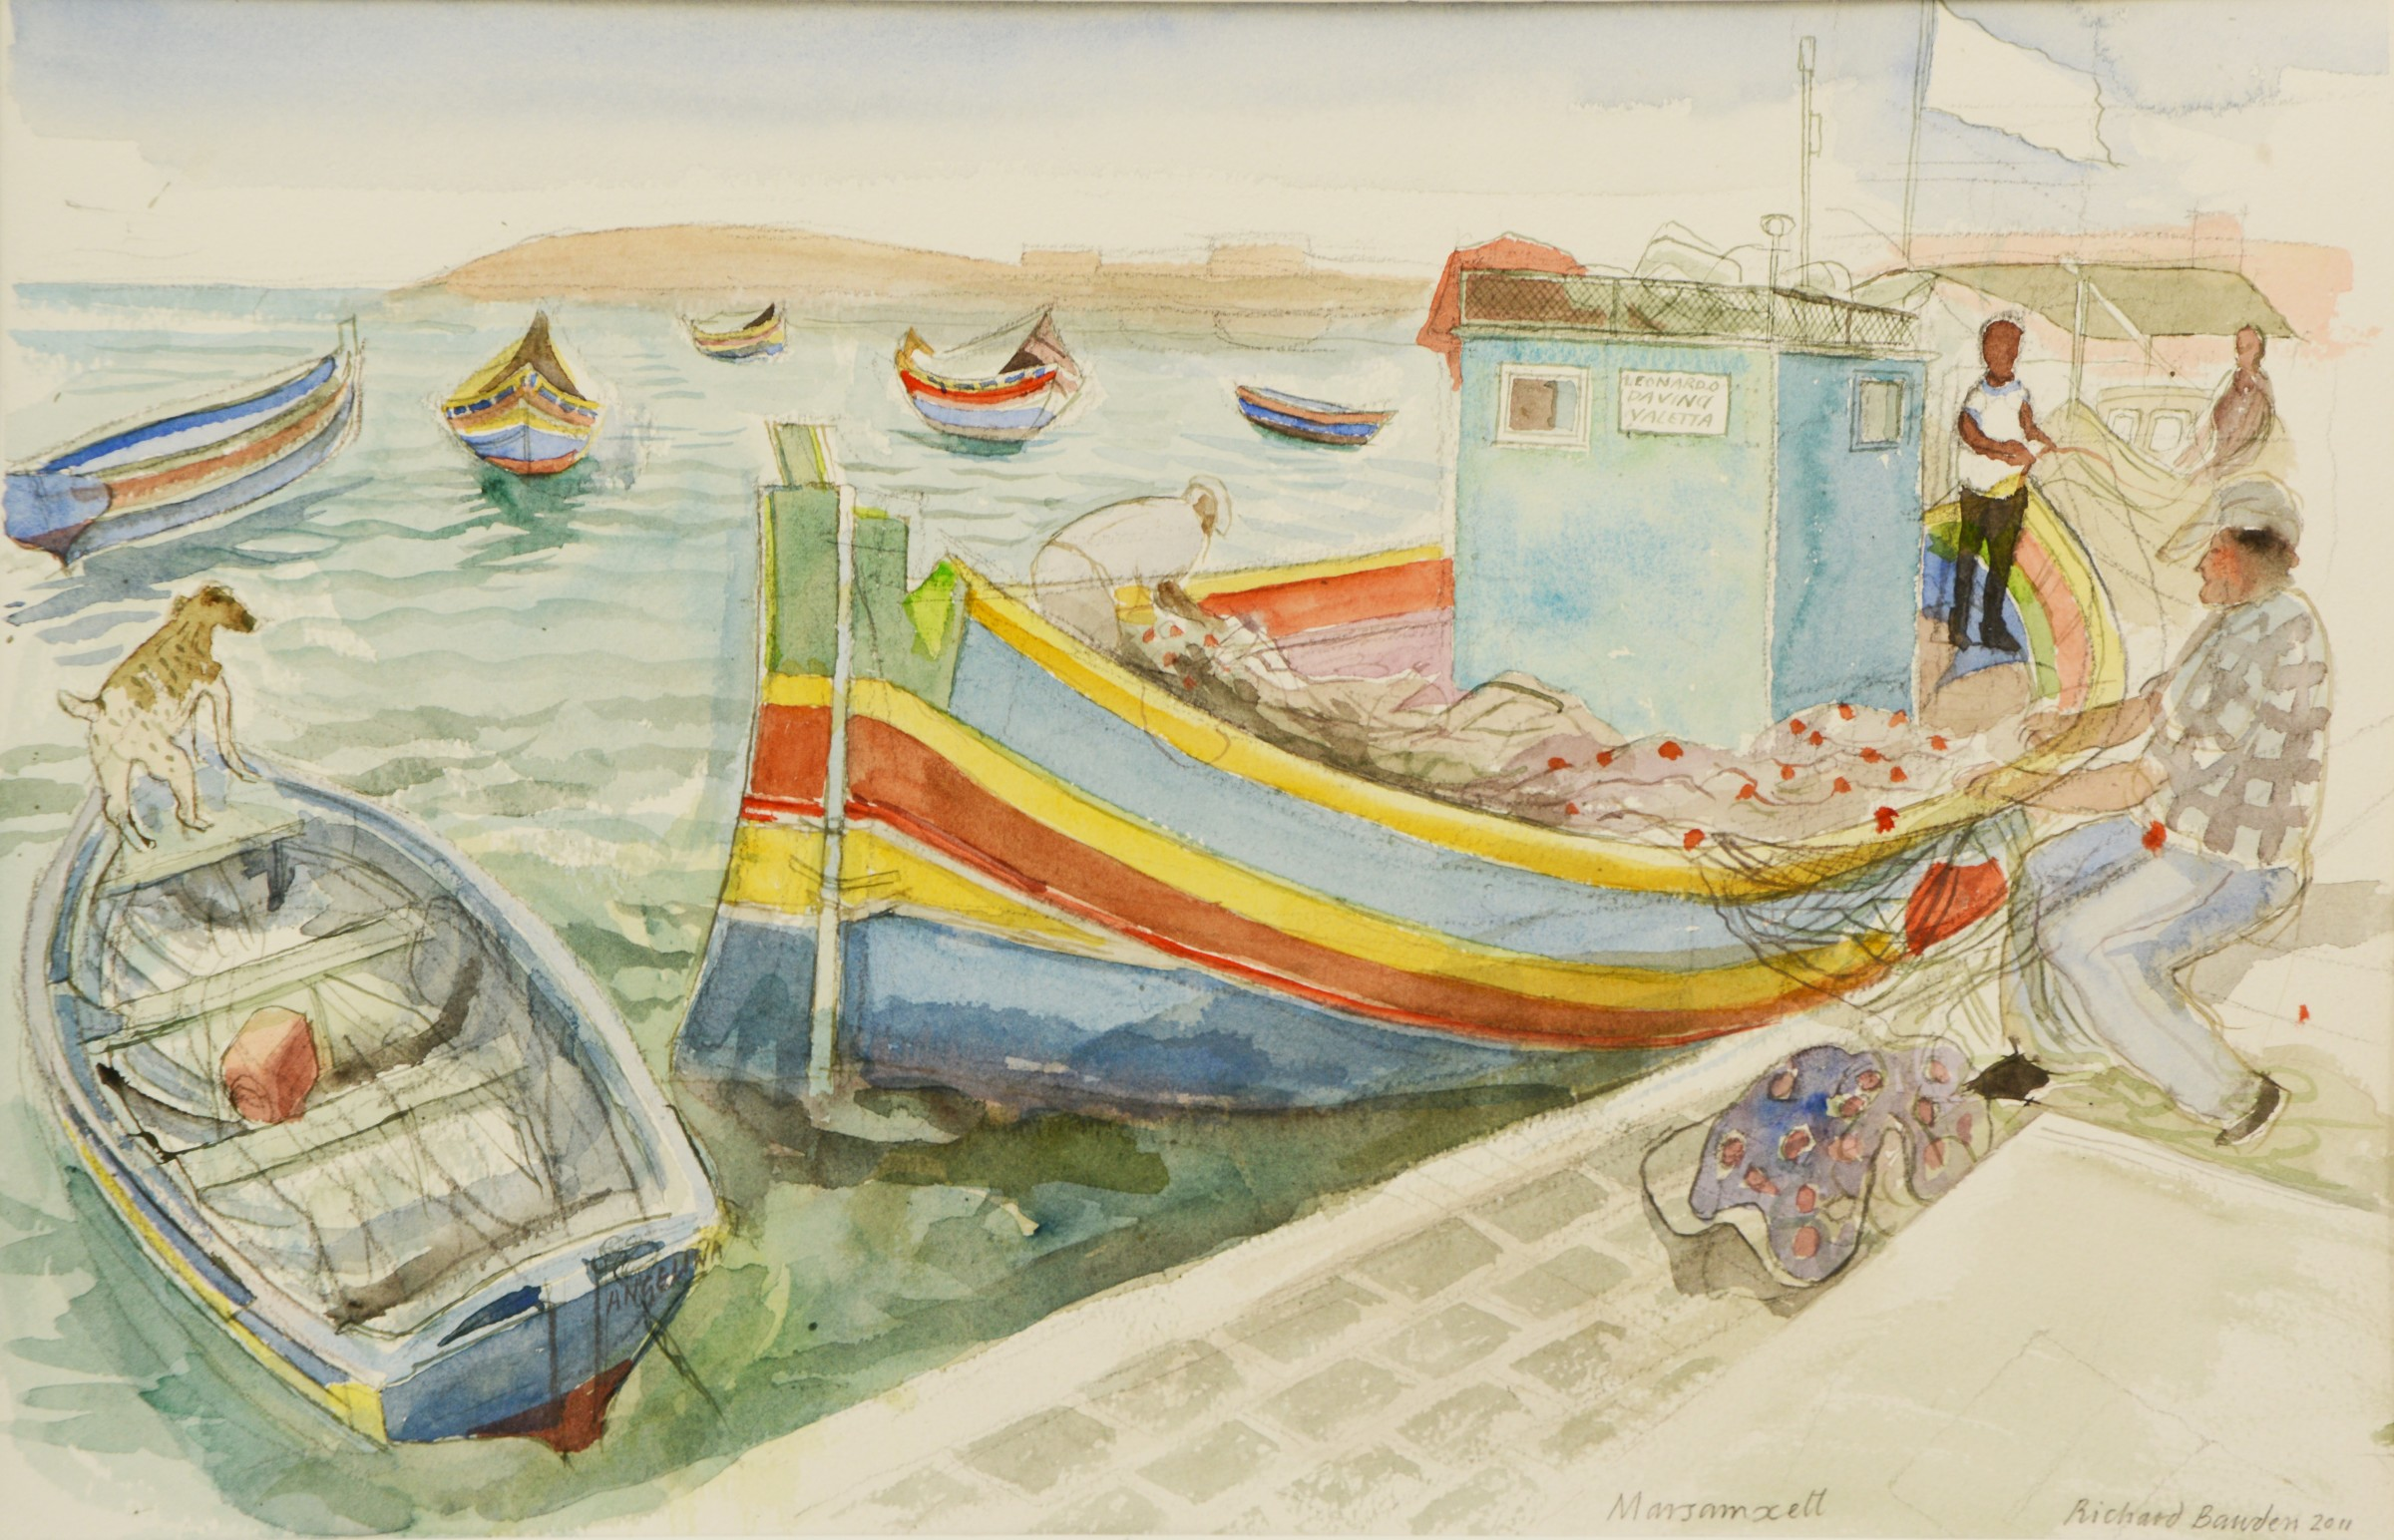 <span class=&#34;link fancybox-details-link&#34;><a href=&#34;/artists/38-richard-bawden/works/9466-richard-bawden-fishing-boats-at-marsaxlokk/&#34;>View Detail Page</a></span><div class=&#34;artist&#34;><span class=&#34;artist&#34;><strong>Richard Bawden</strong></span></div>